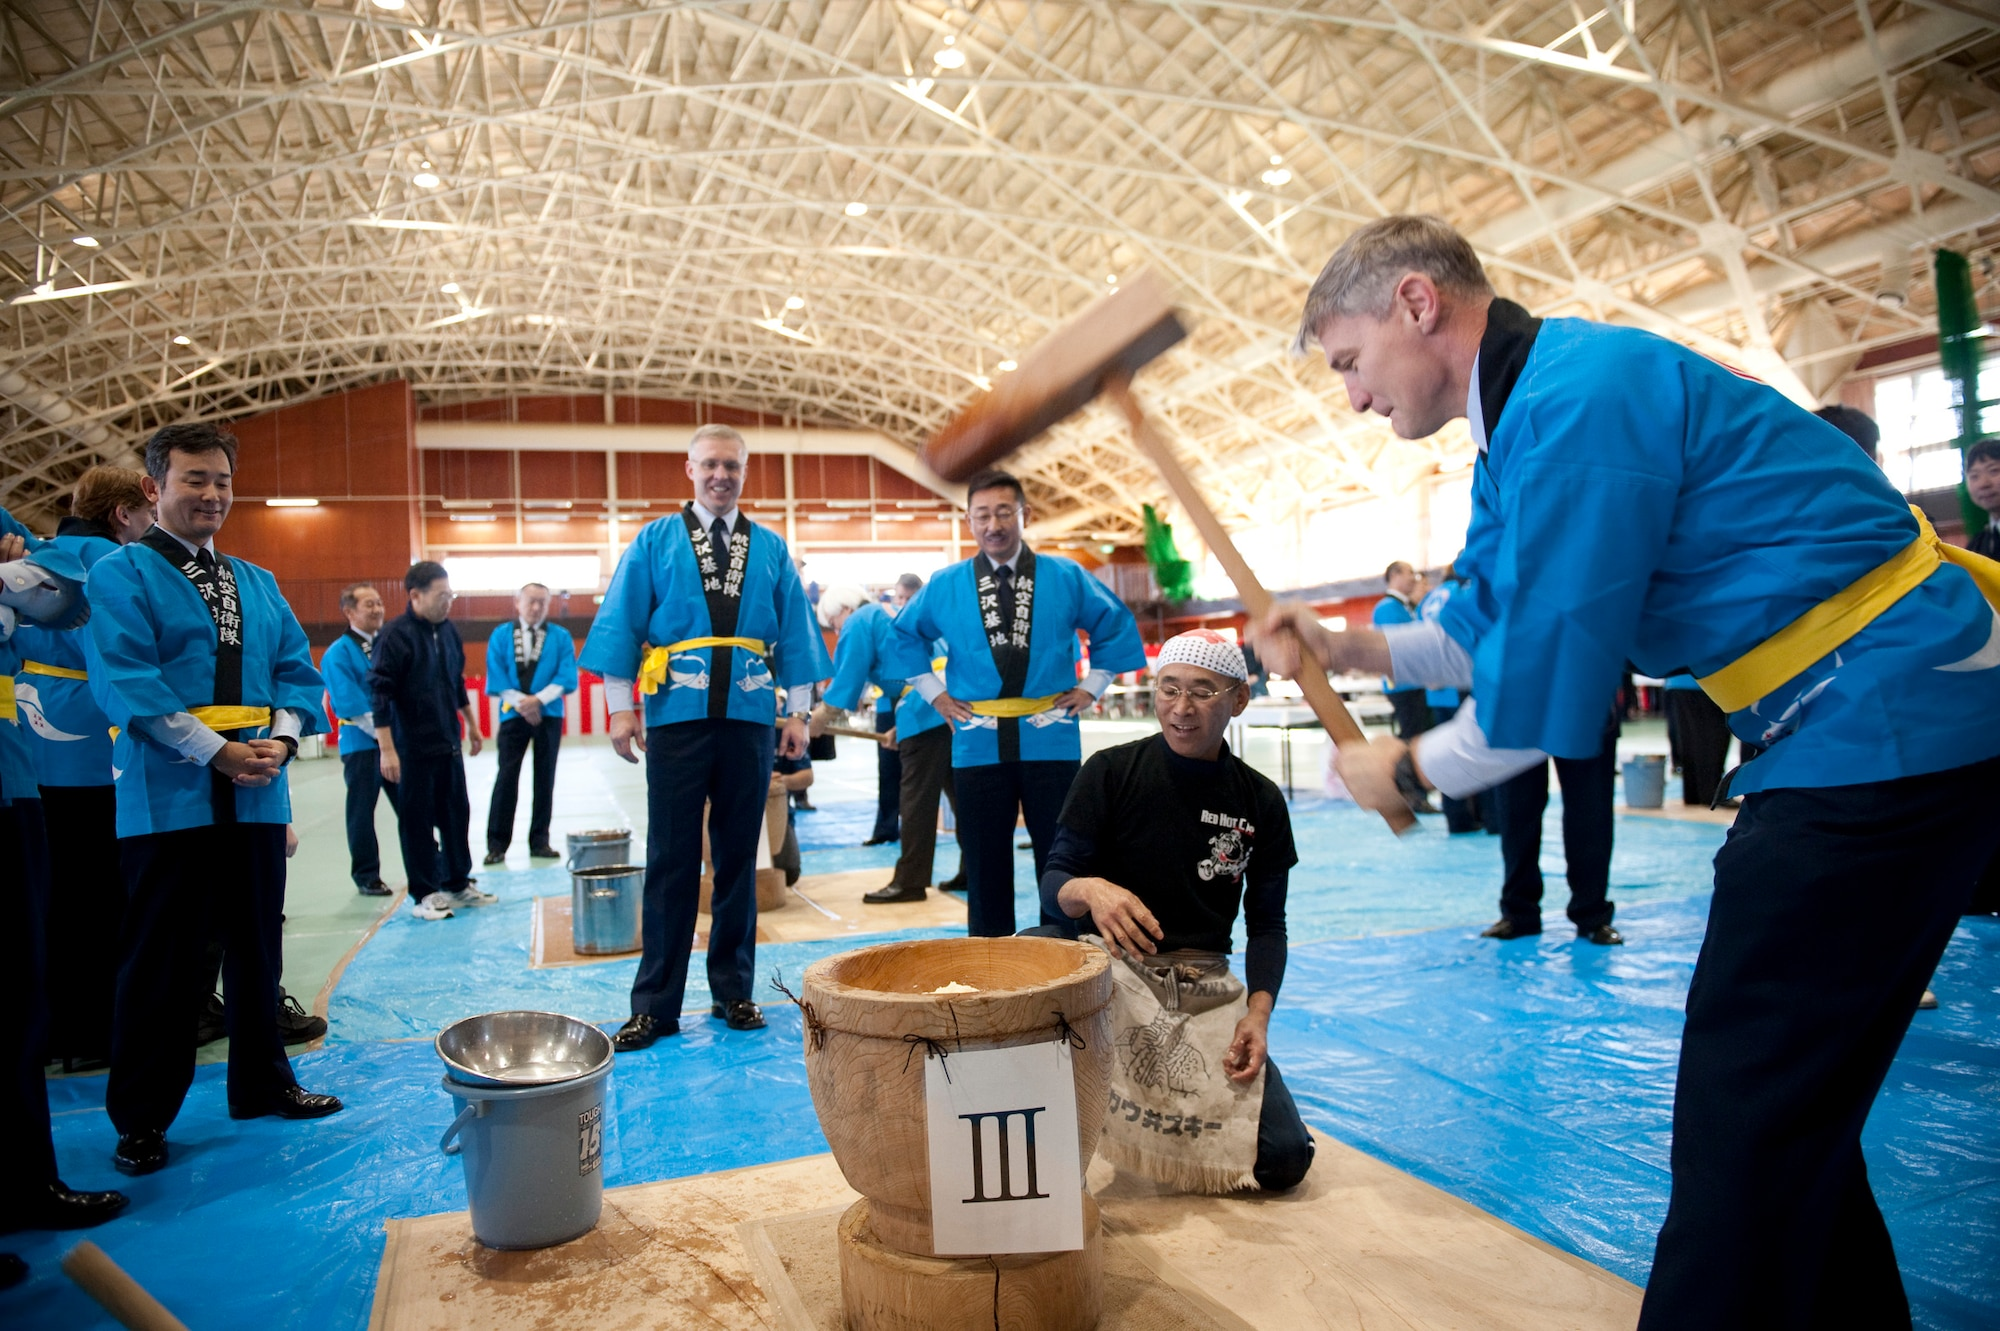 U.S. Air Force Col. John Pearse, 35th Operations Group commander, pounds mochi during the annual mochi pounding ceremony at the Japan Air Self-Defense Force gym, Misawa Air Base, Japan; Dec. 16, 2010. Mochi is a type of rice cake made by pounding steamed, glutinous rice in a large wooden mortar with a large wooden mallet. (U.S. Air Force photo by Staff Sgt. Samuel Morse/Released)